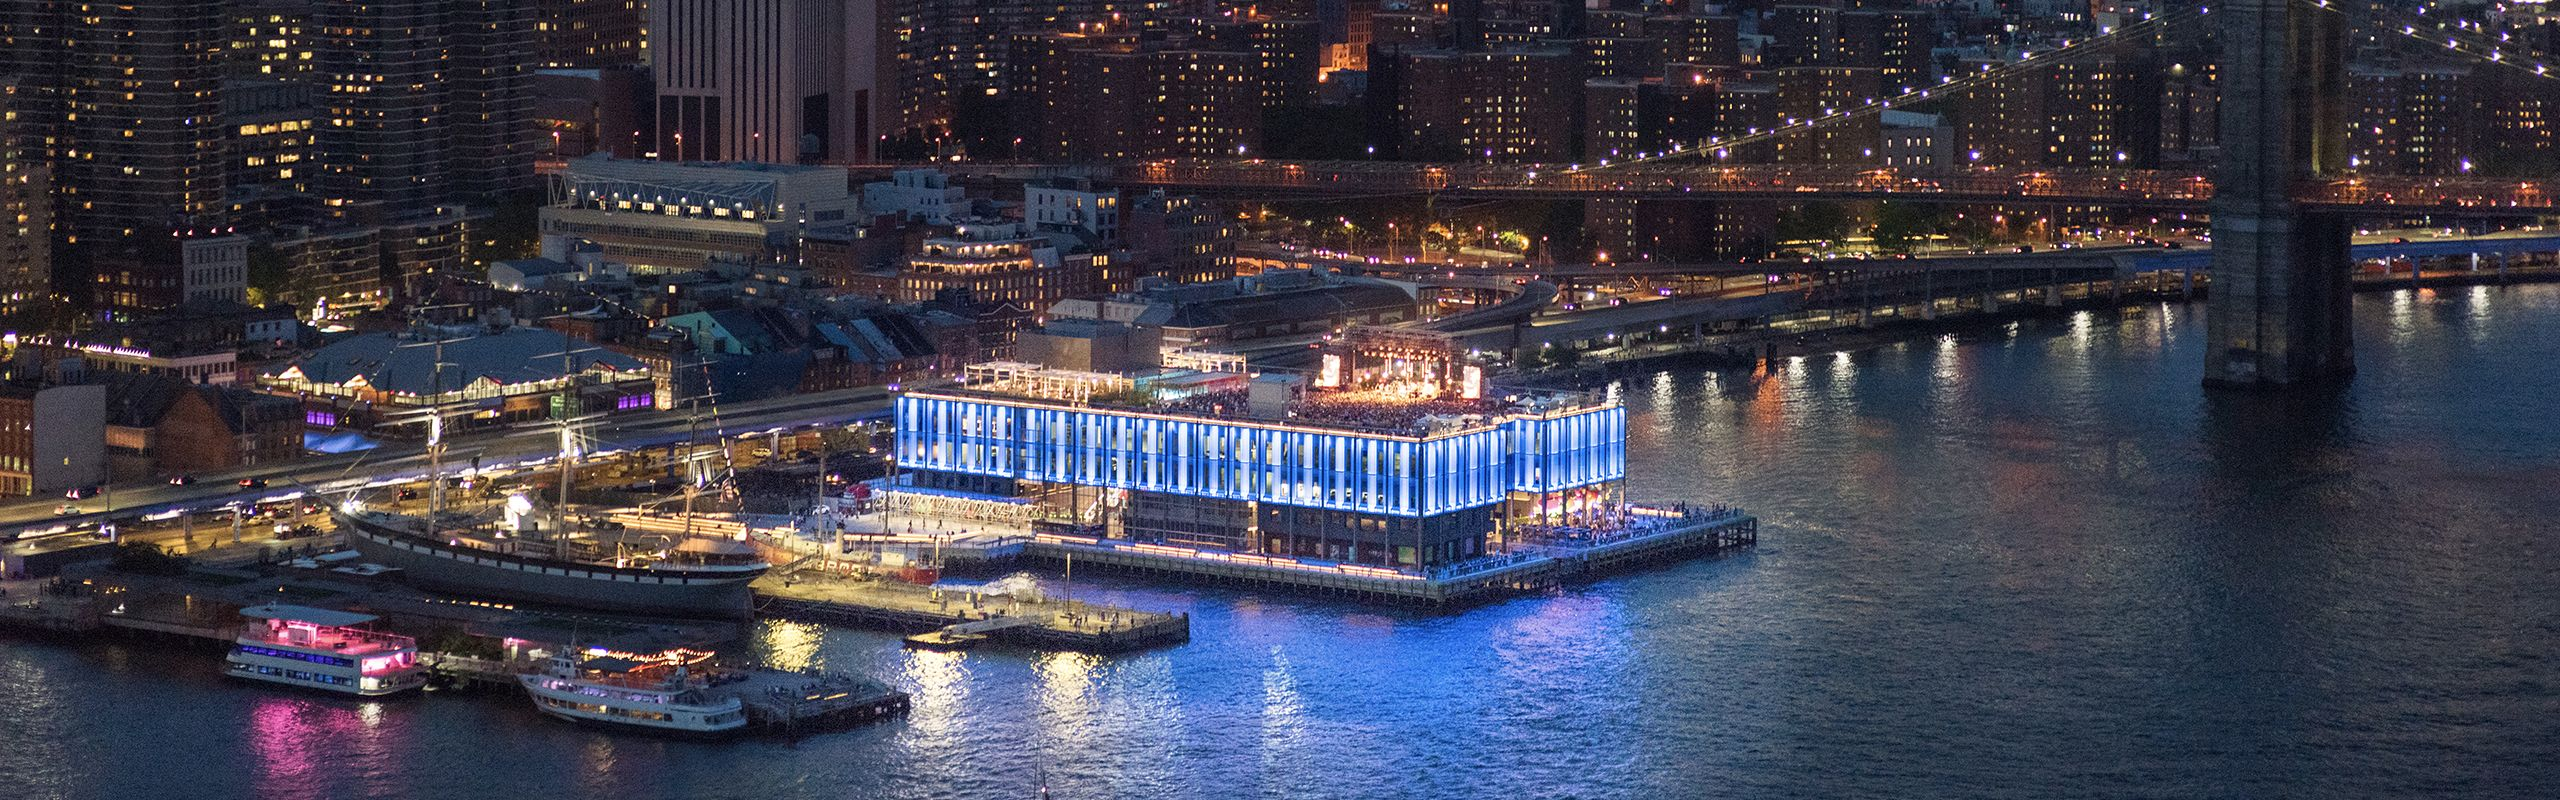 Aerial view of Pier 17